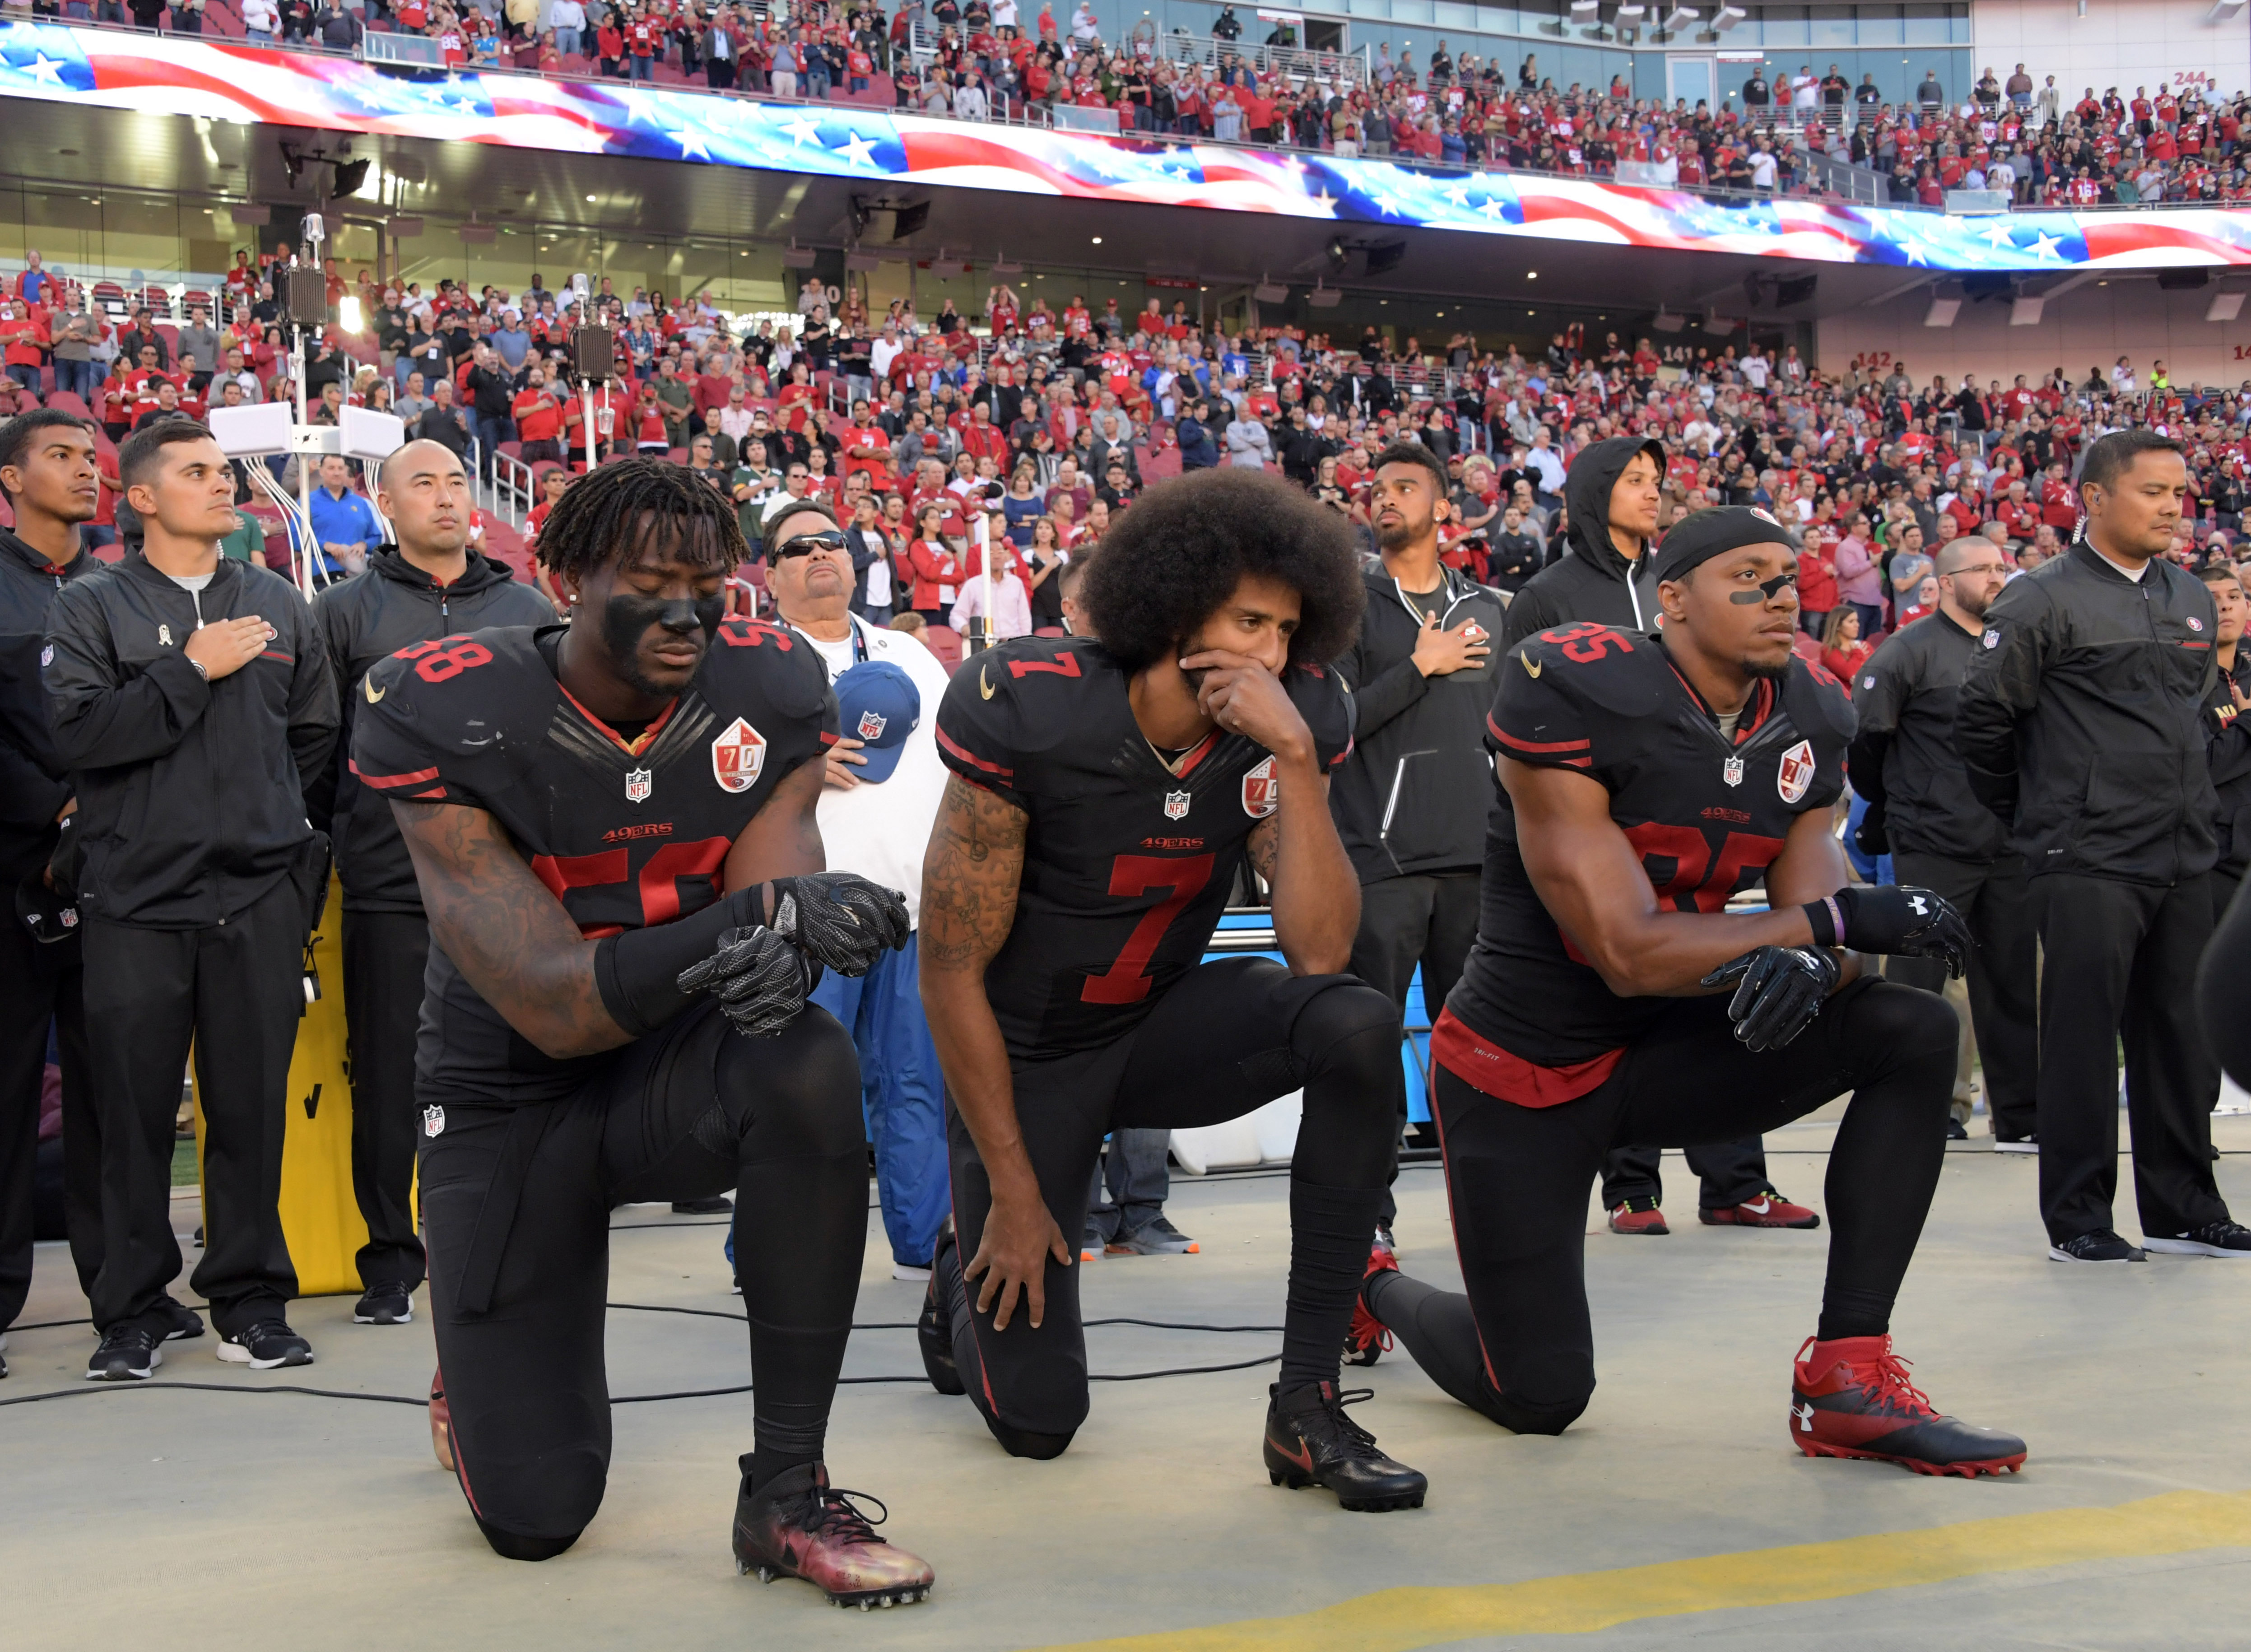 Oct 6, 2016; Santa Clara, CA, USA; San Francisco 49ers outside linebacker Eli Harold (58), quarterback Colin Kaepernick (7) and free safety Eric Reid (35) kneel in protest during the playing of the national anthem before a NFL game against the Arizona Cardinals at Levi's Stadium. Mandatory Credit: Kirby Lee-USA TODAY Sports / Reuters Picture Supplied by Action Images (TAGS: Sport American Football NFL) *** Local Caption *** 2016-10-07T004015Z_262046146_NOCID_RTRMADP_3_NFL-ARIZONA-CARDINALS-AT-SAN-FRANCISCO-49ERS.JPG